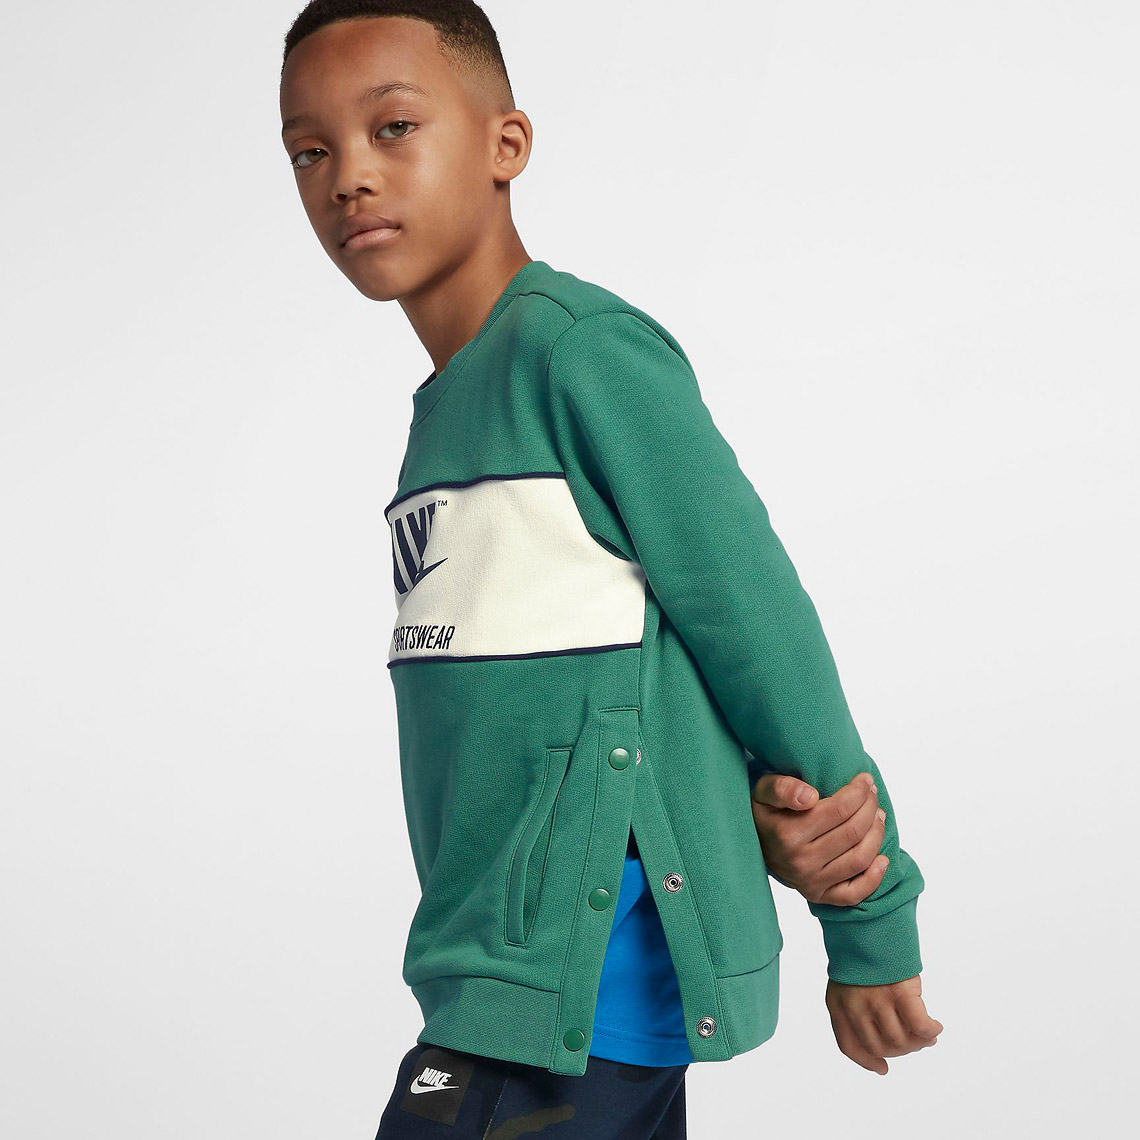 sportswear-big-kids-boys-long-sleeve-crew-top-nXAg4og